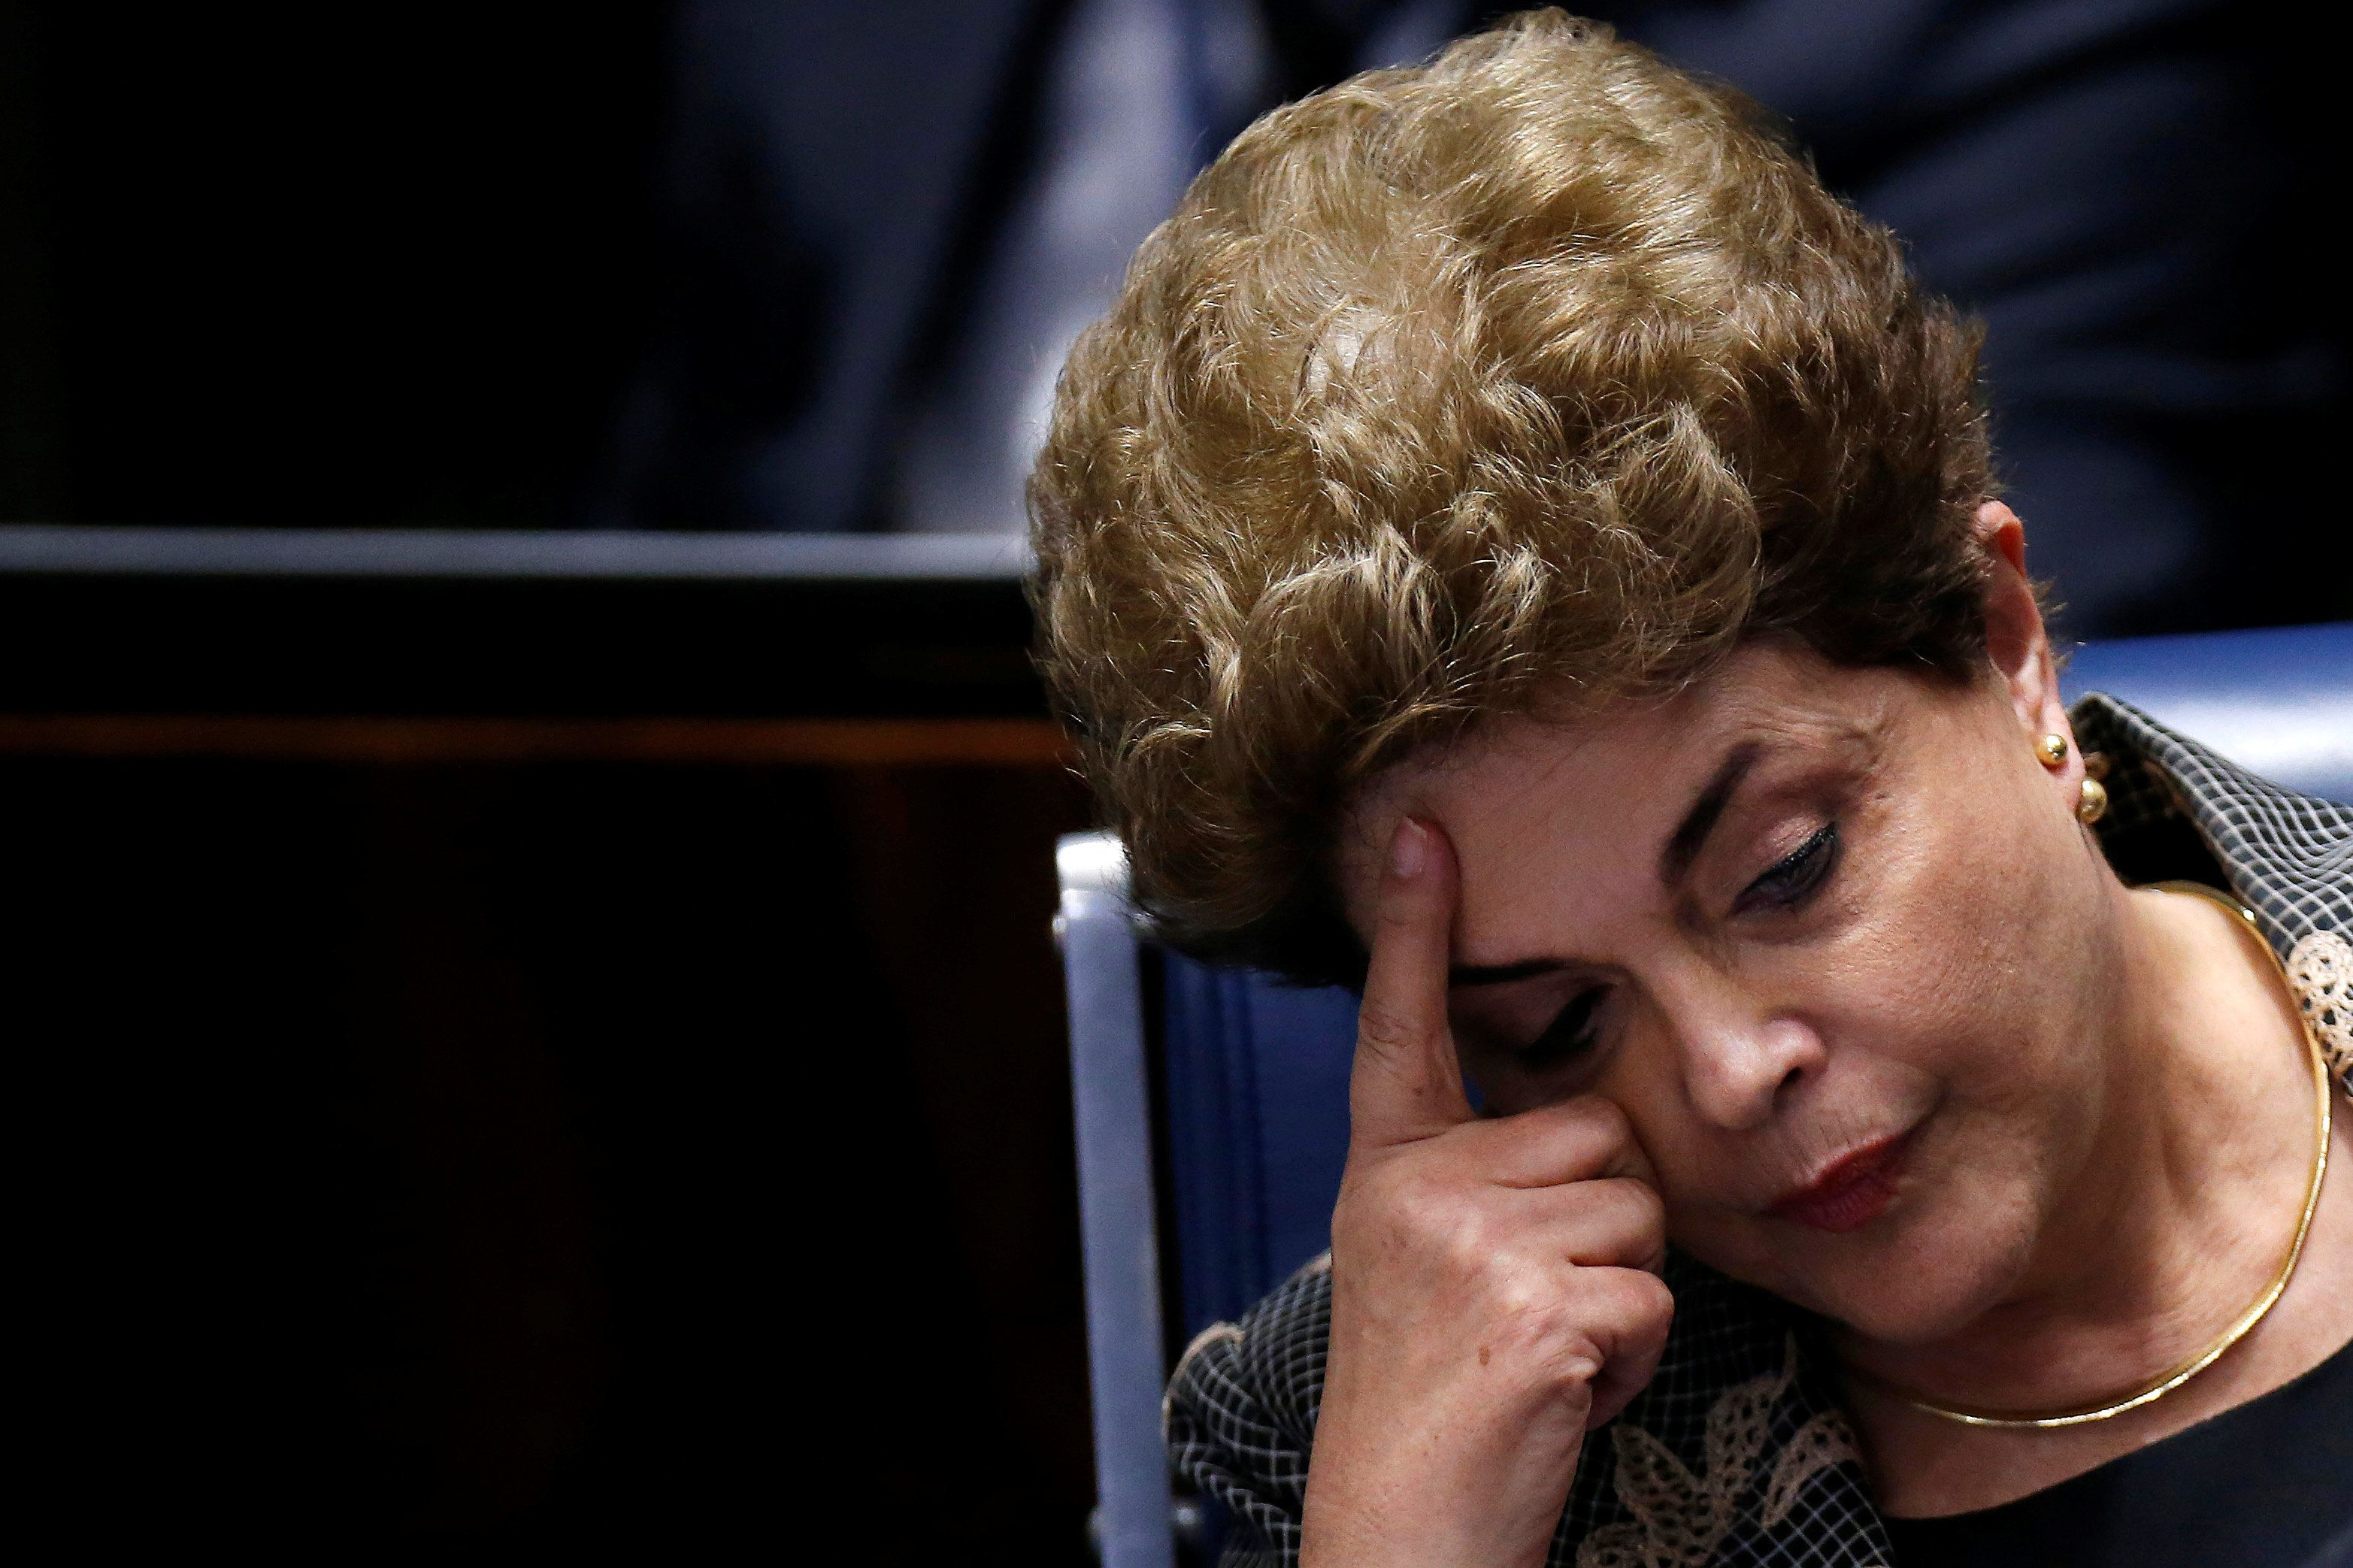 Brazil's suspended President Dilma Rousseff attends the final session of debate and voting on Rousseff's impeachment trial in Brasilia, Brazil, August 29, 2016. REUTERS/Ueslei Marcelino     TPX IMAGES OF THE DAY